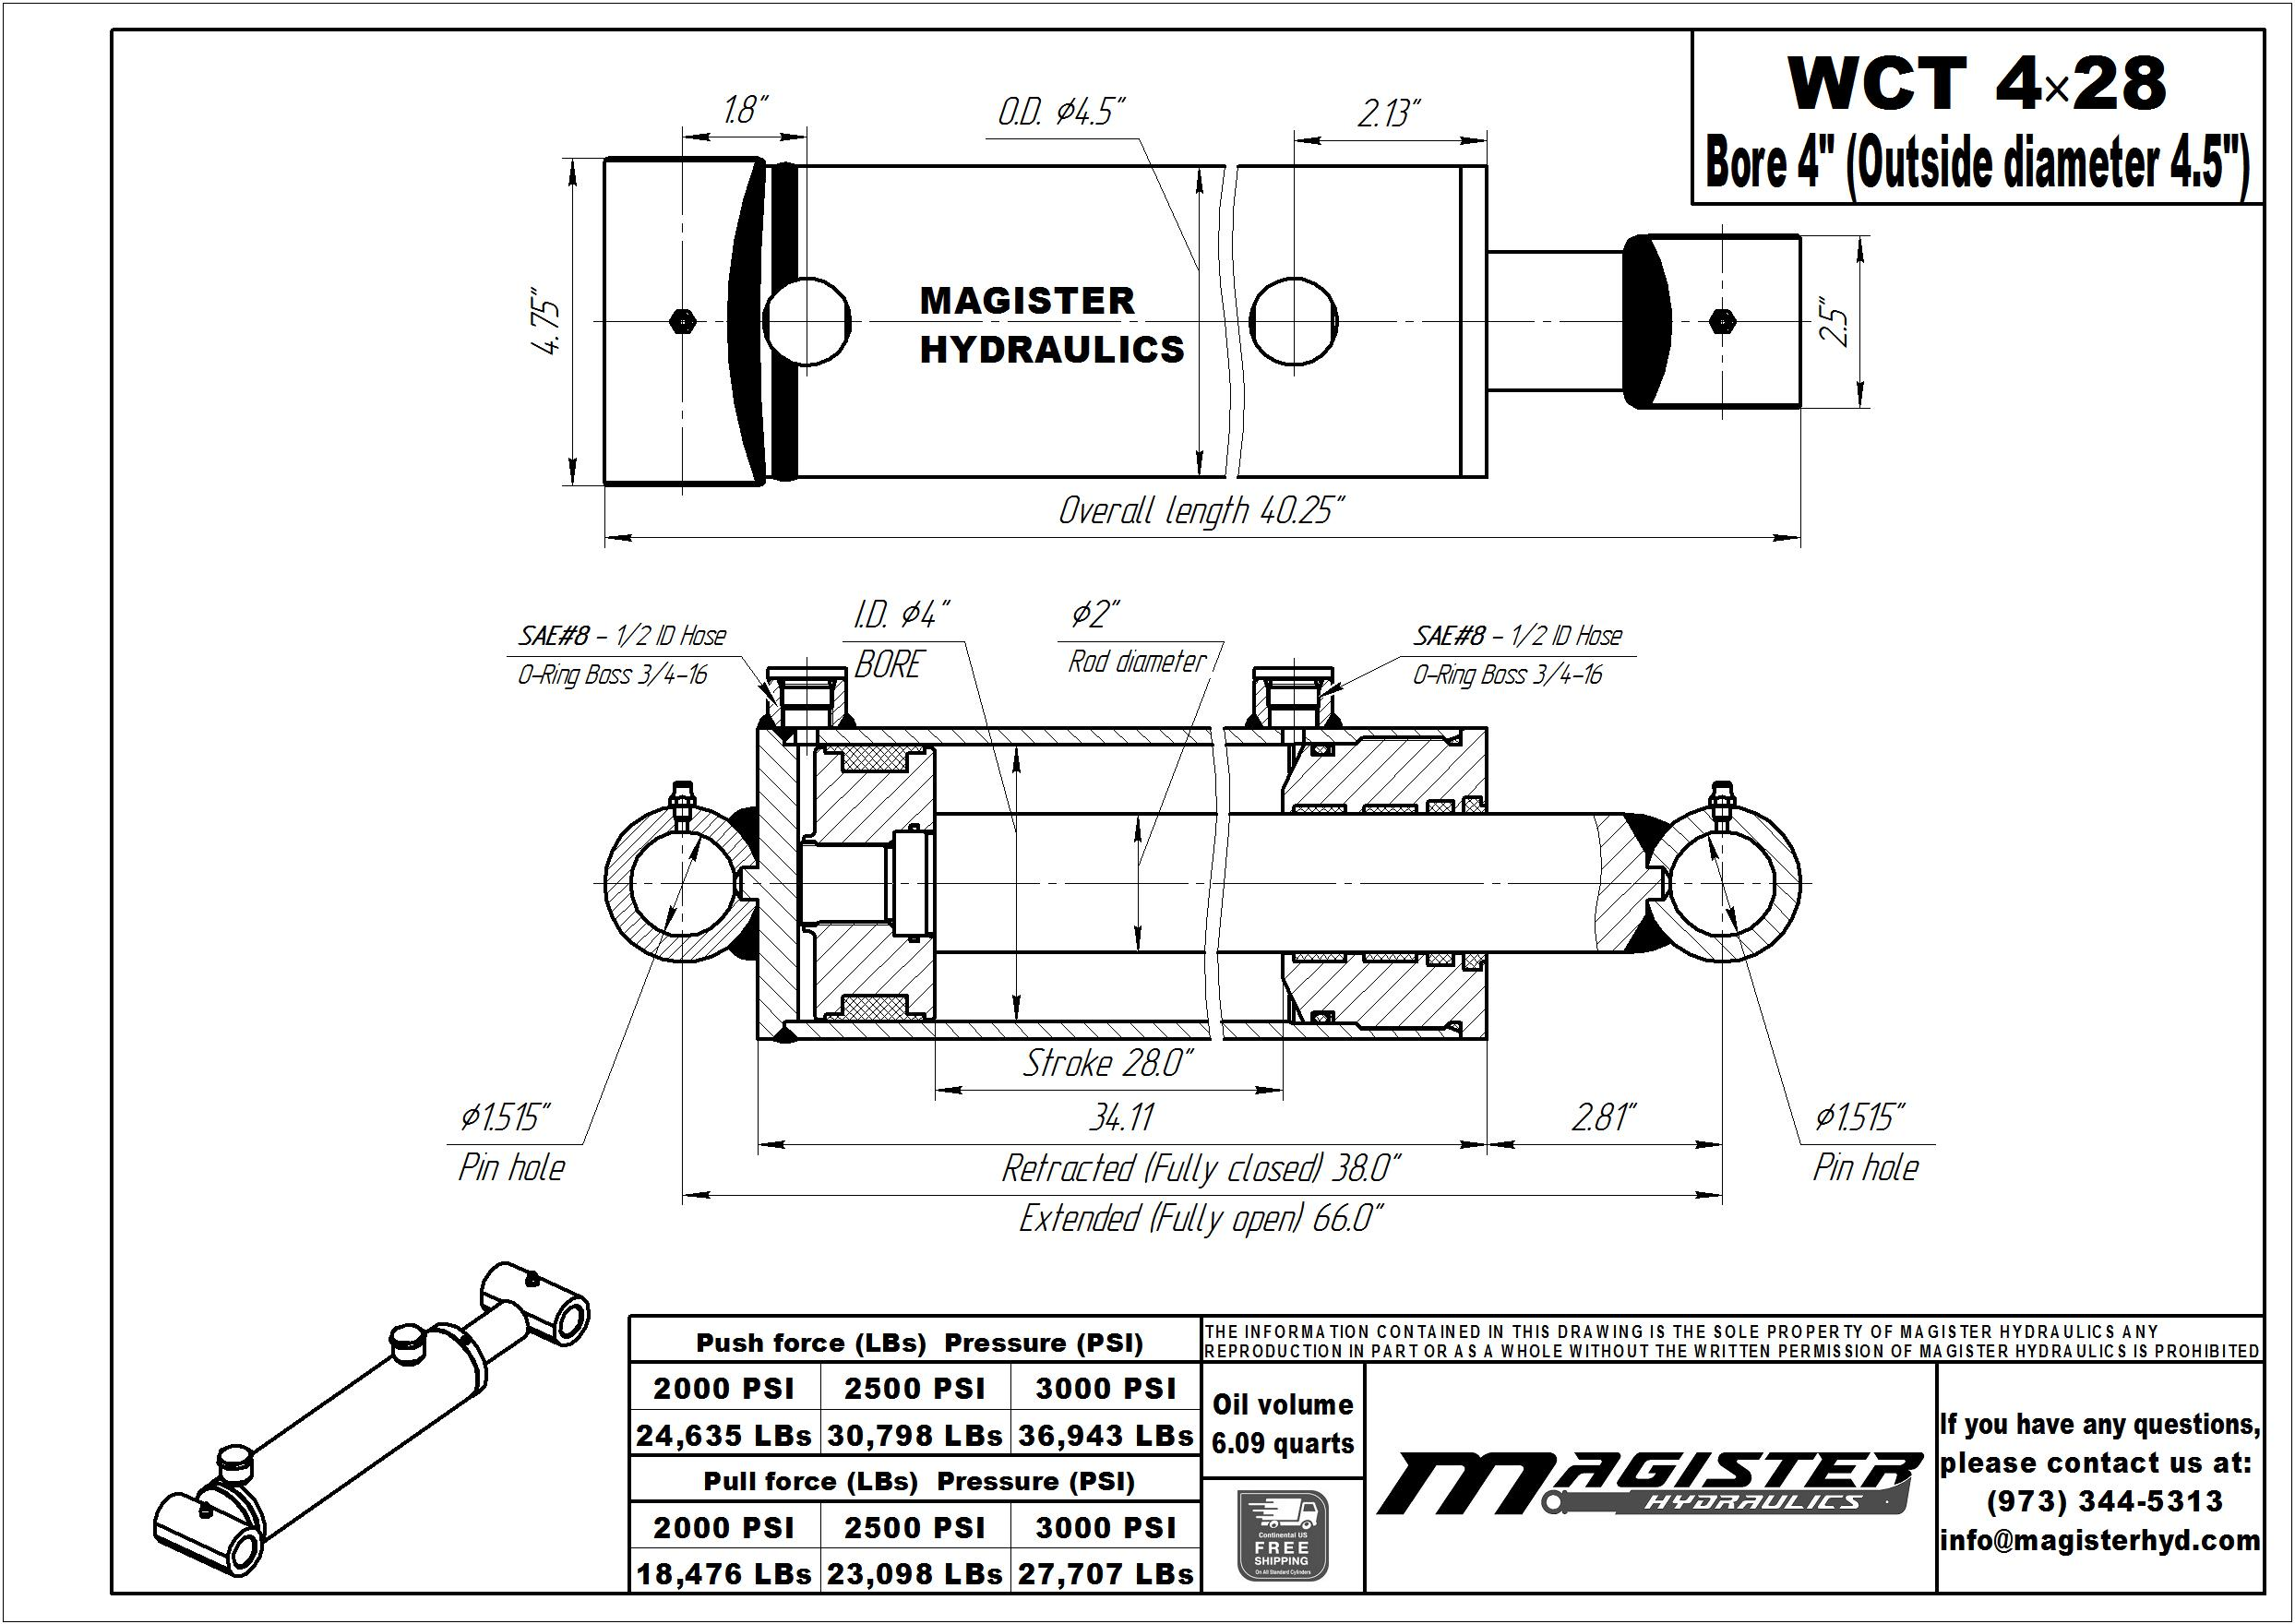 4 bore x 28 stroke hydraulic cylinder, welded cross tube double acting cylinder   Magister Hydraulics